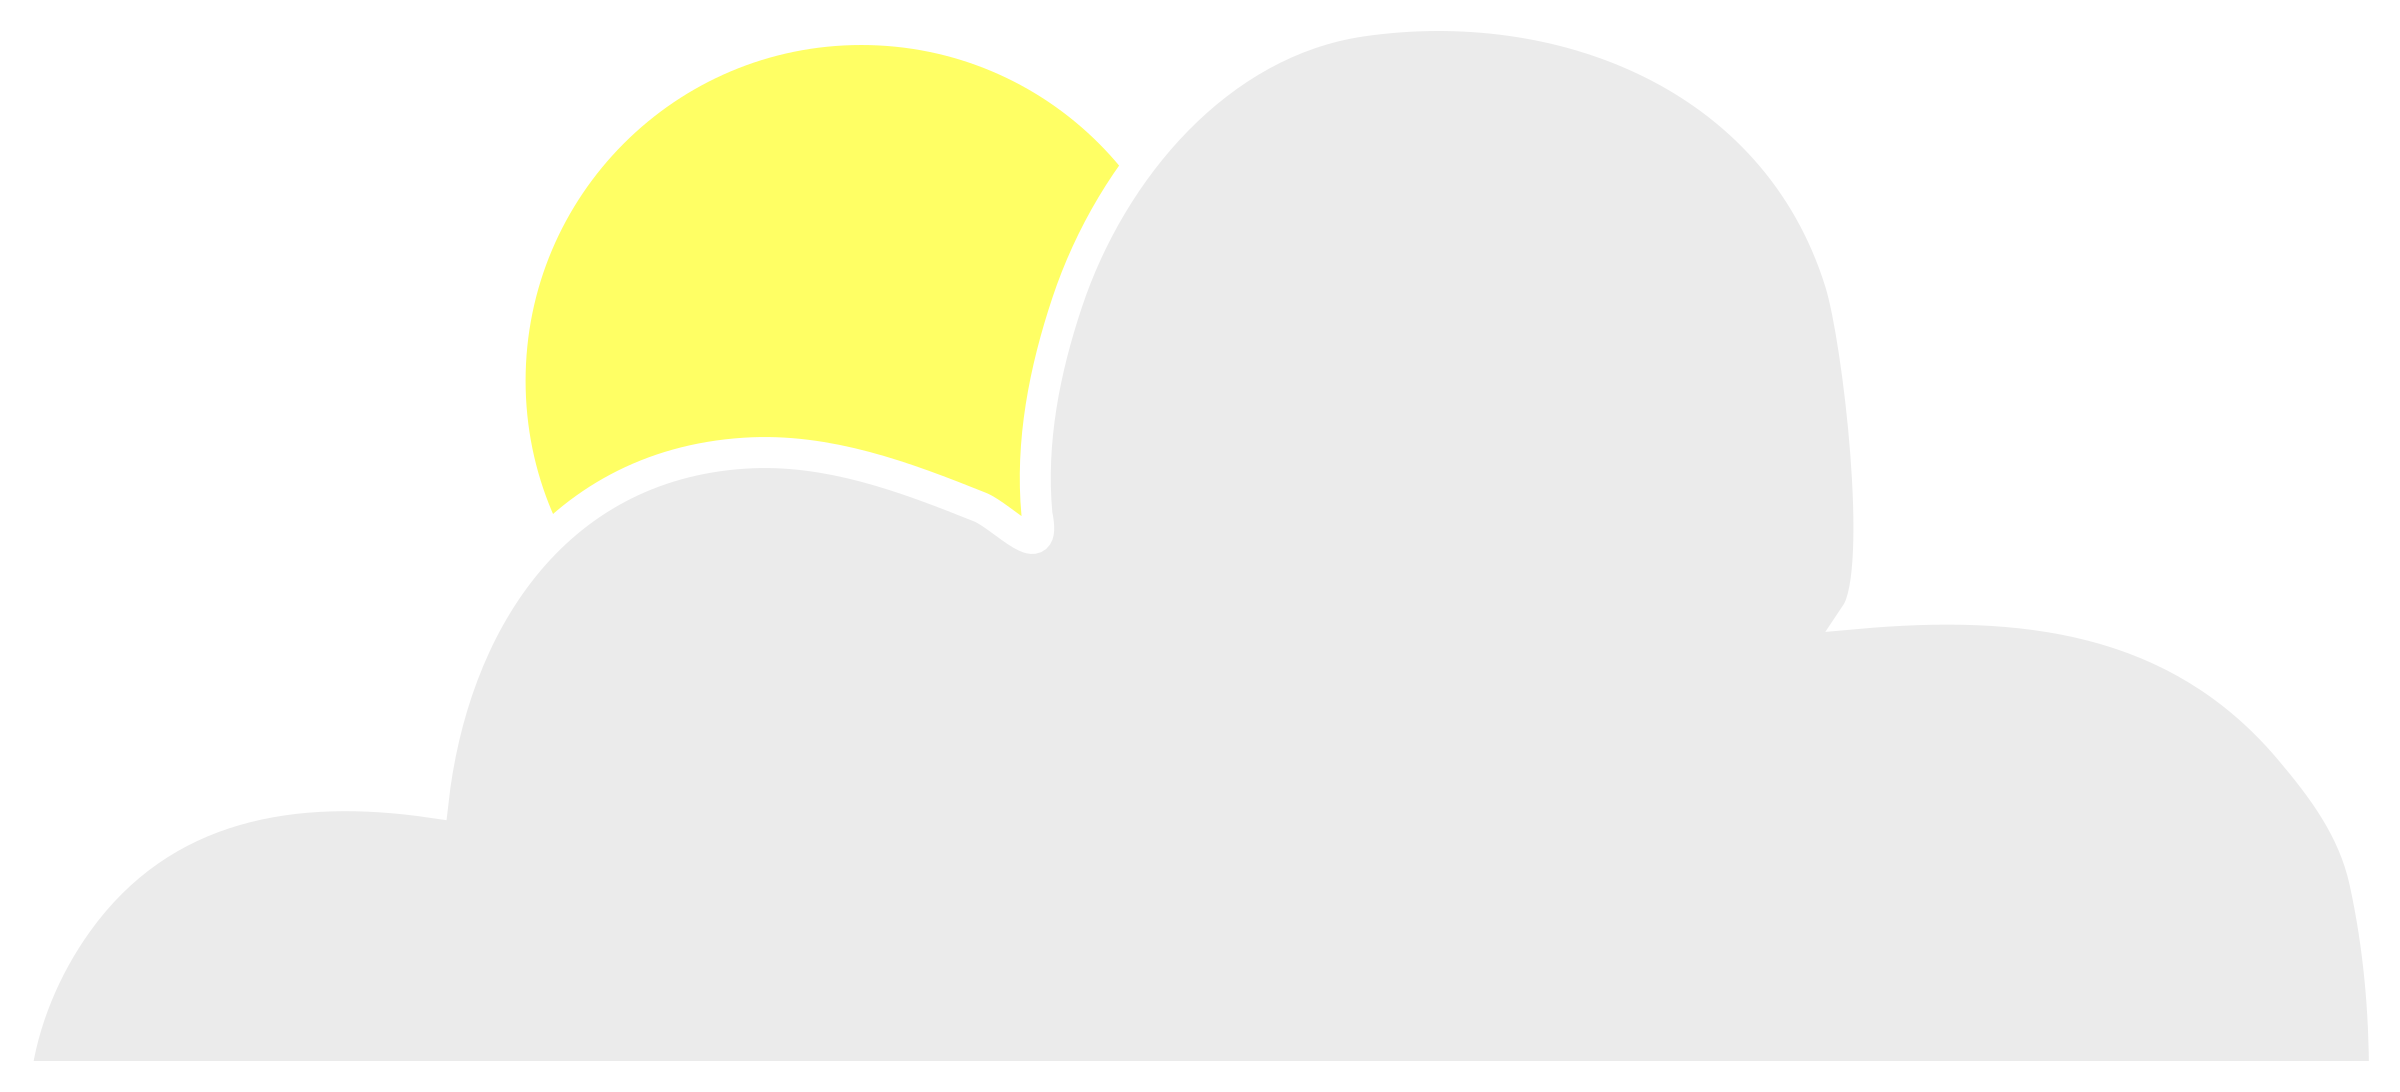 graphic free download Behind cloud big image. Sun with clouds clipart